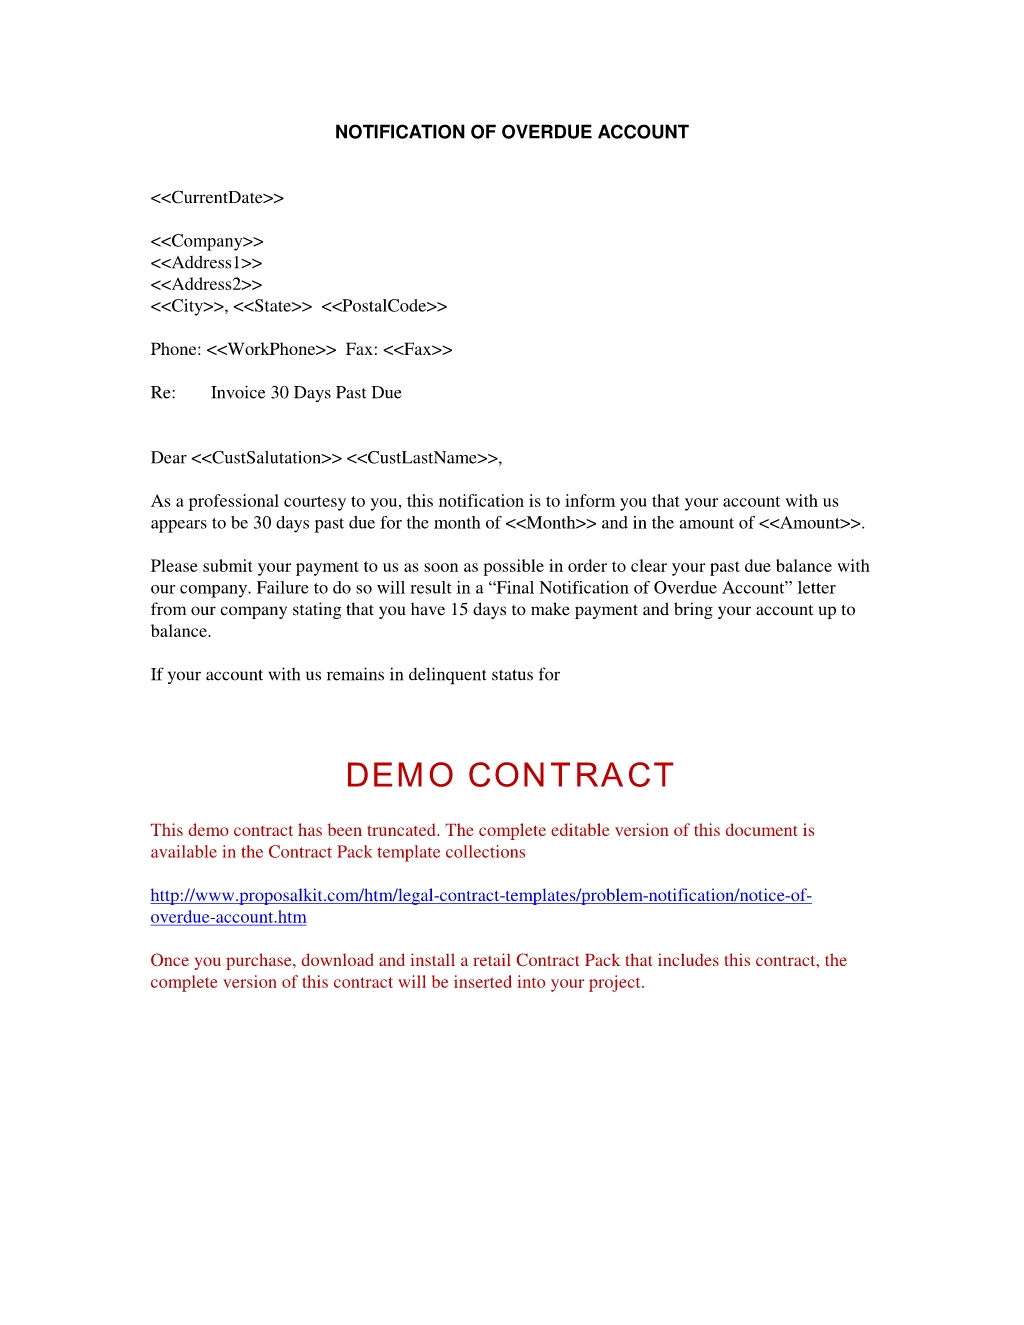 notice of overdue account notification of problem documents late invoice letter